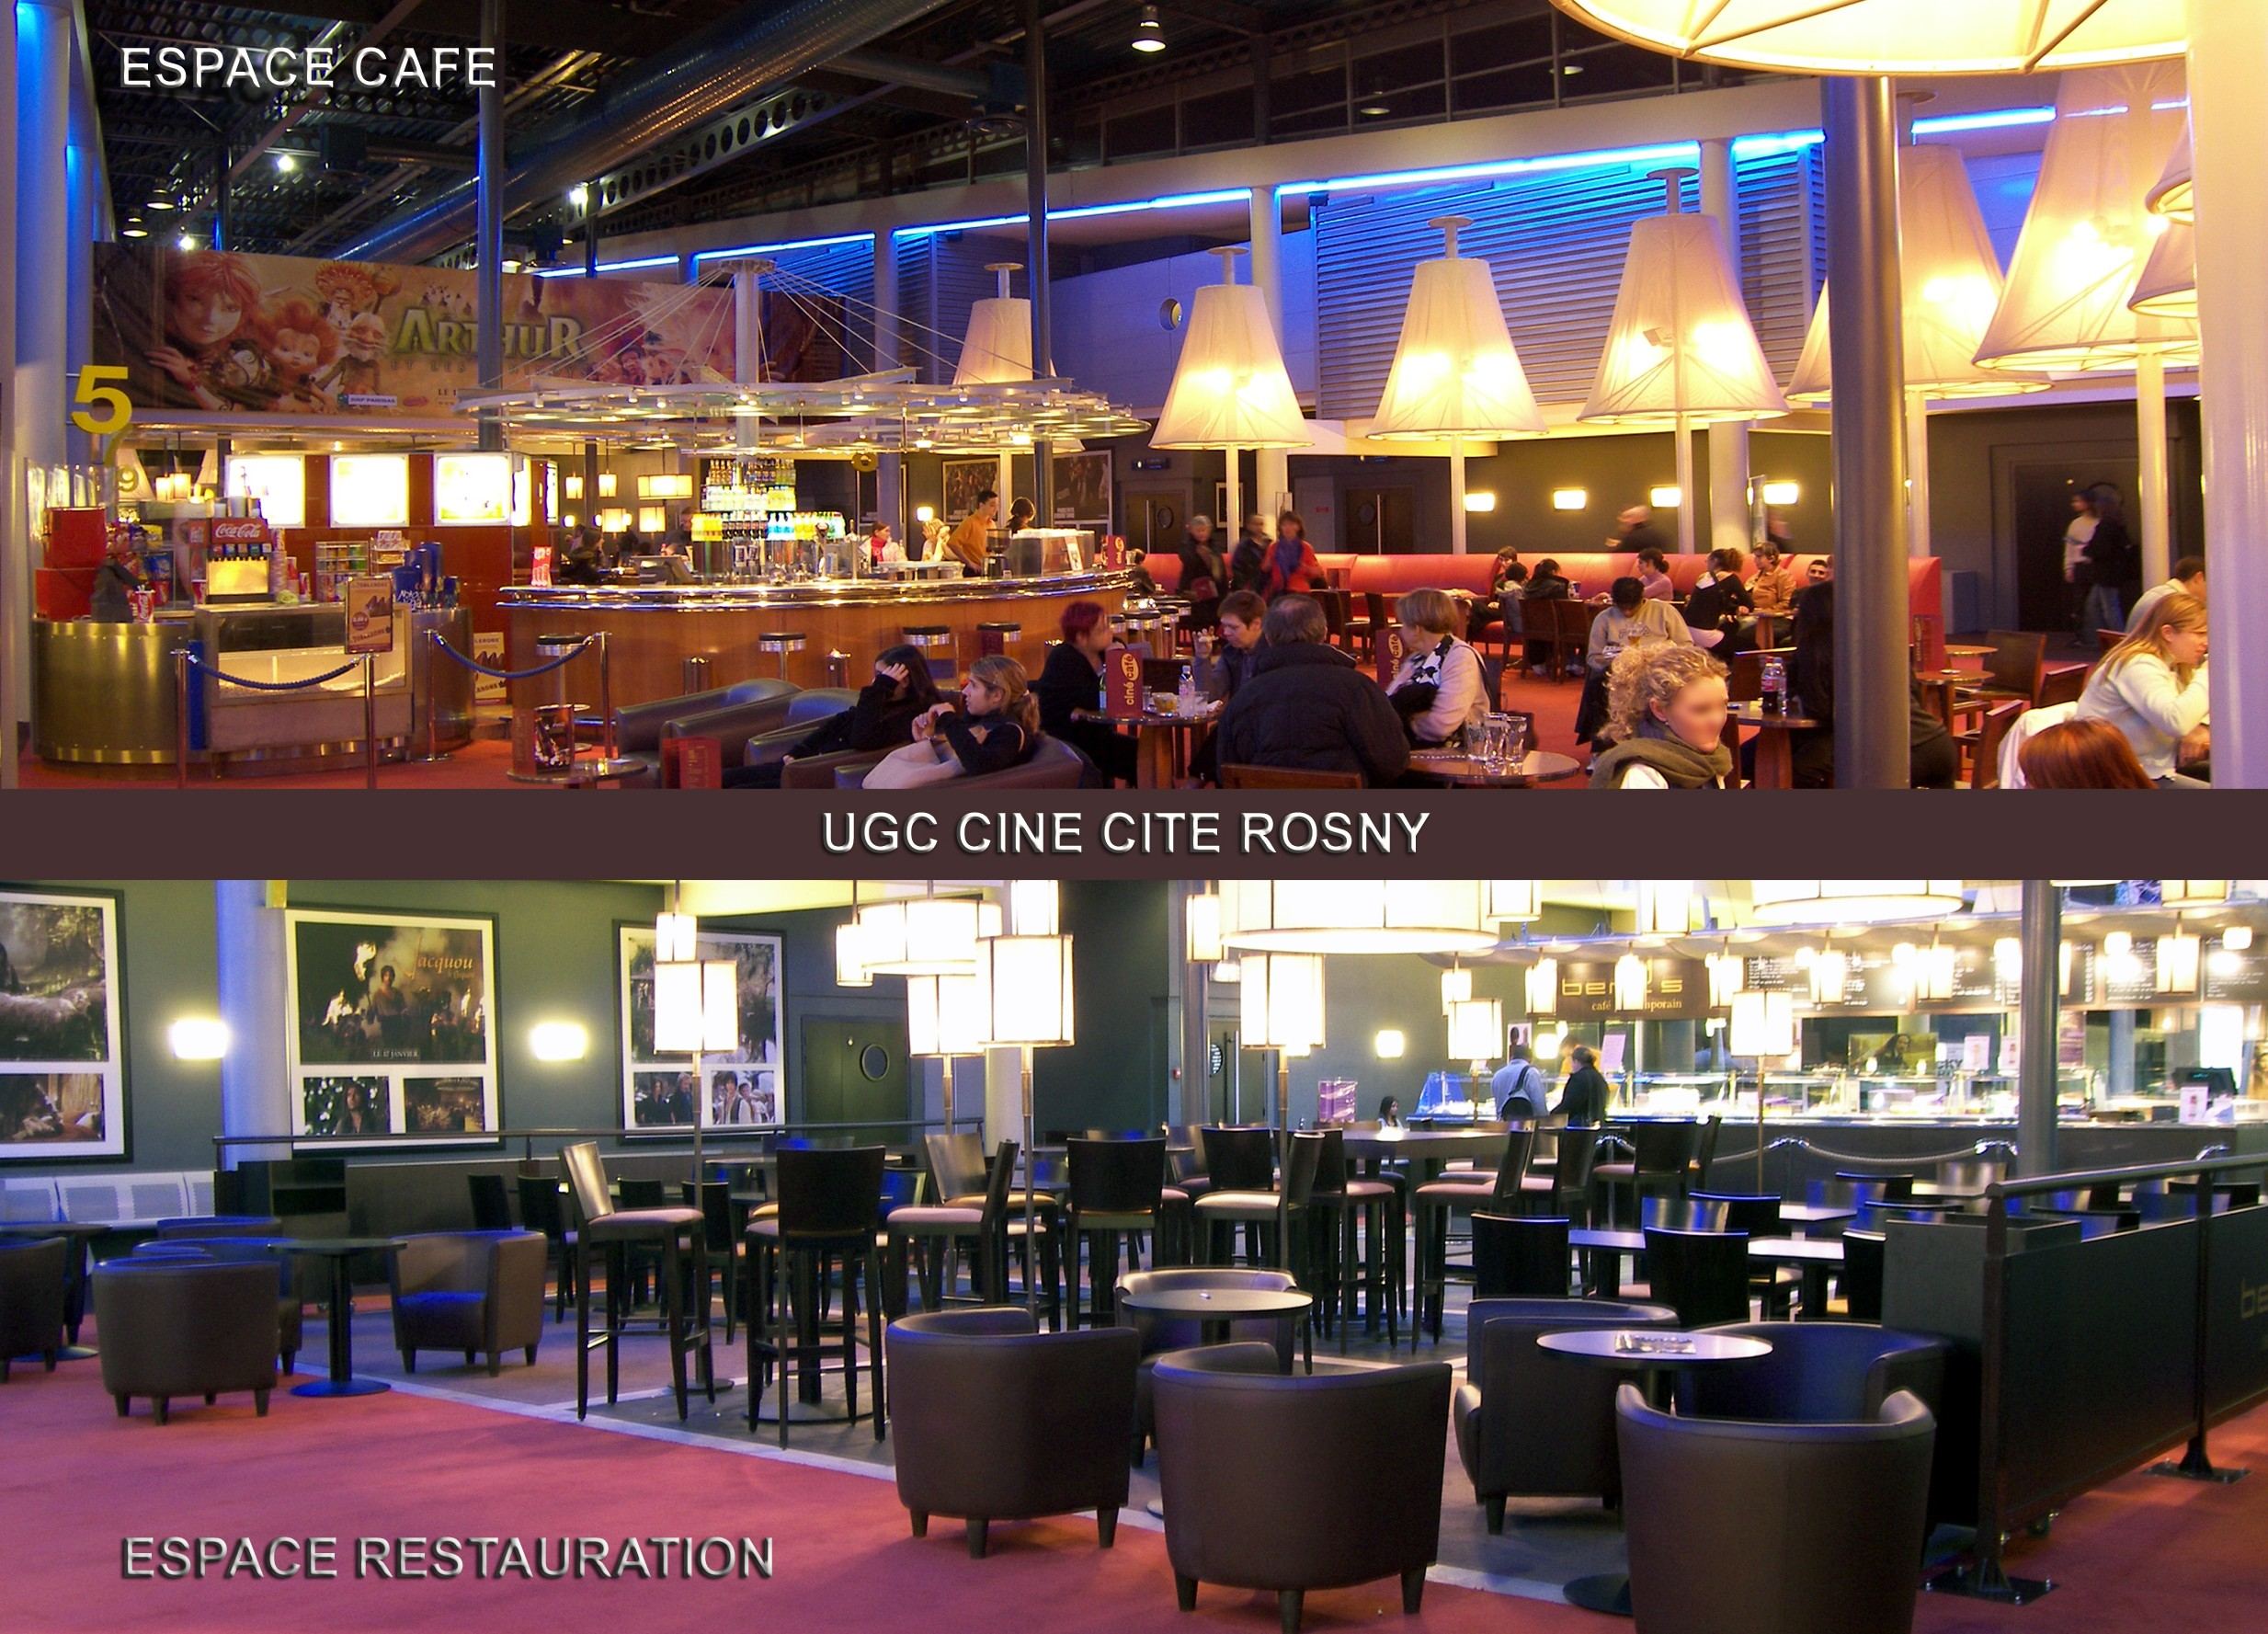 Superb horaire cinema rosny 2 7 photo 7 - Rosny 2 horaire ...